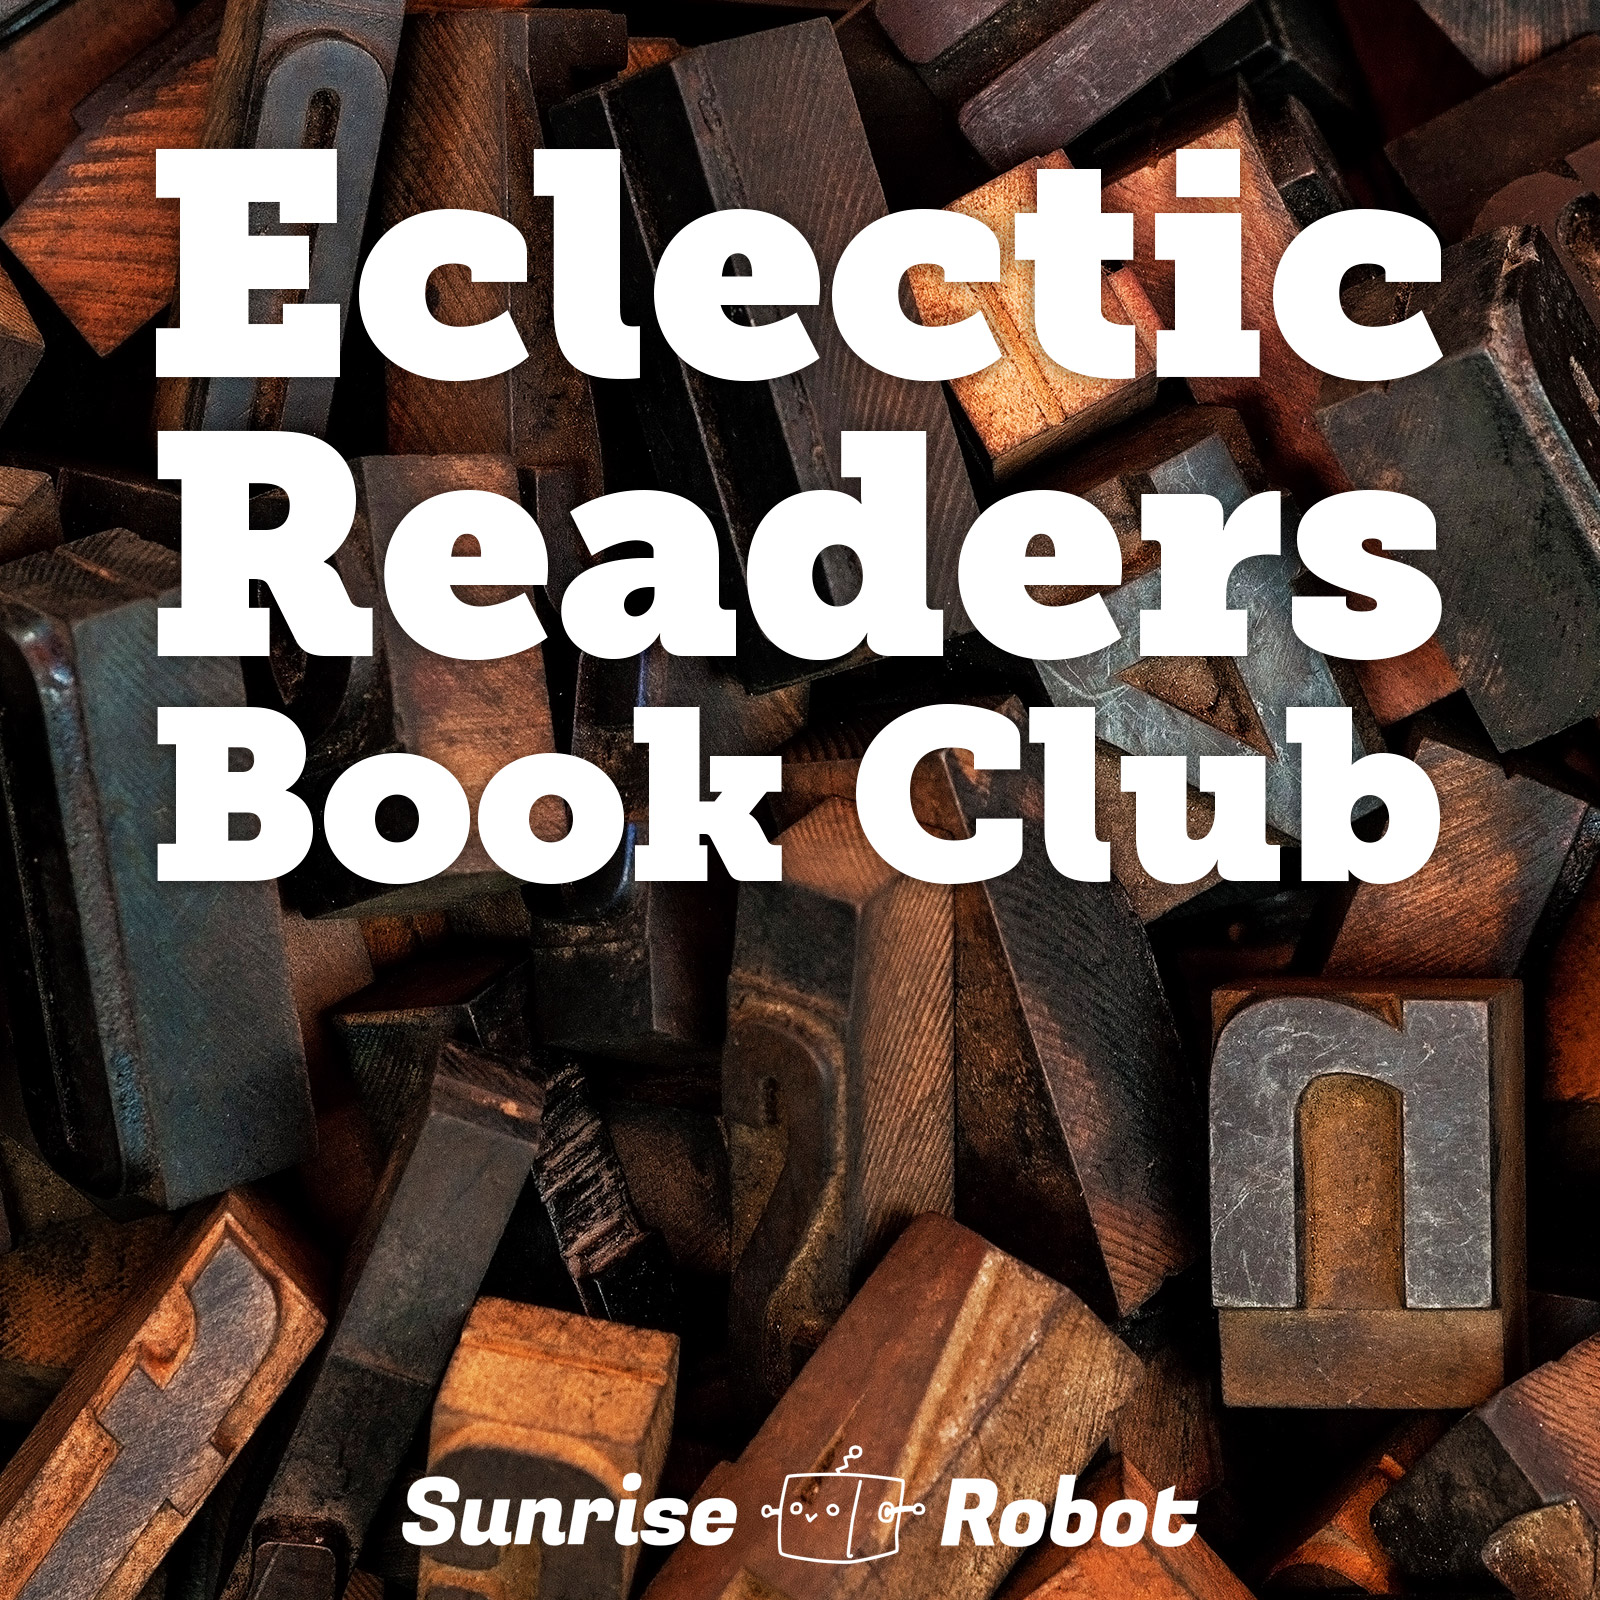 Eclectic Readers Book Club